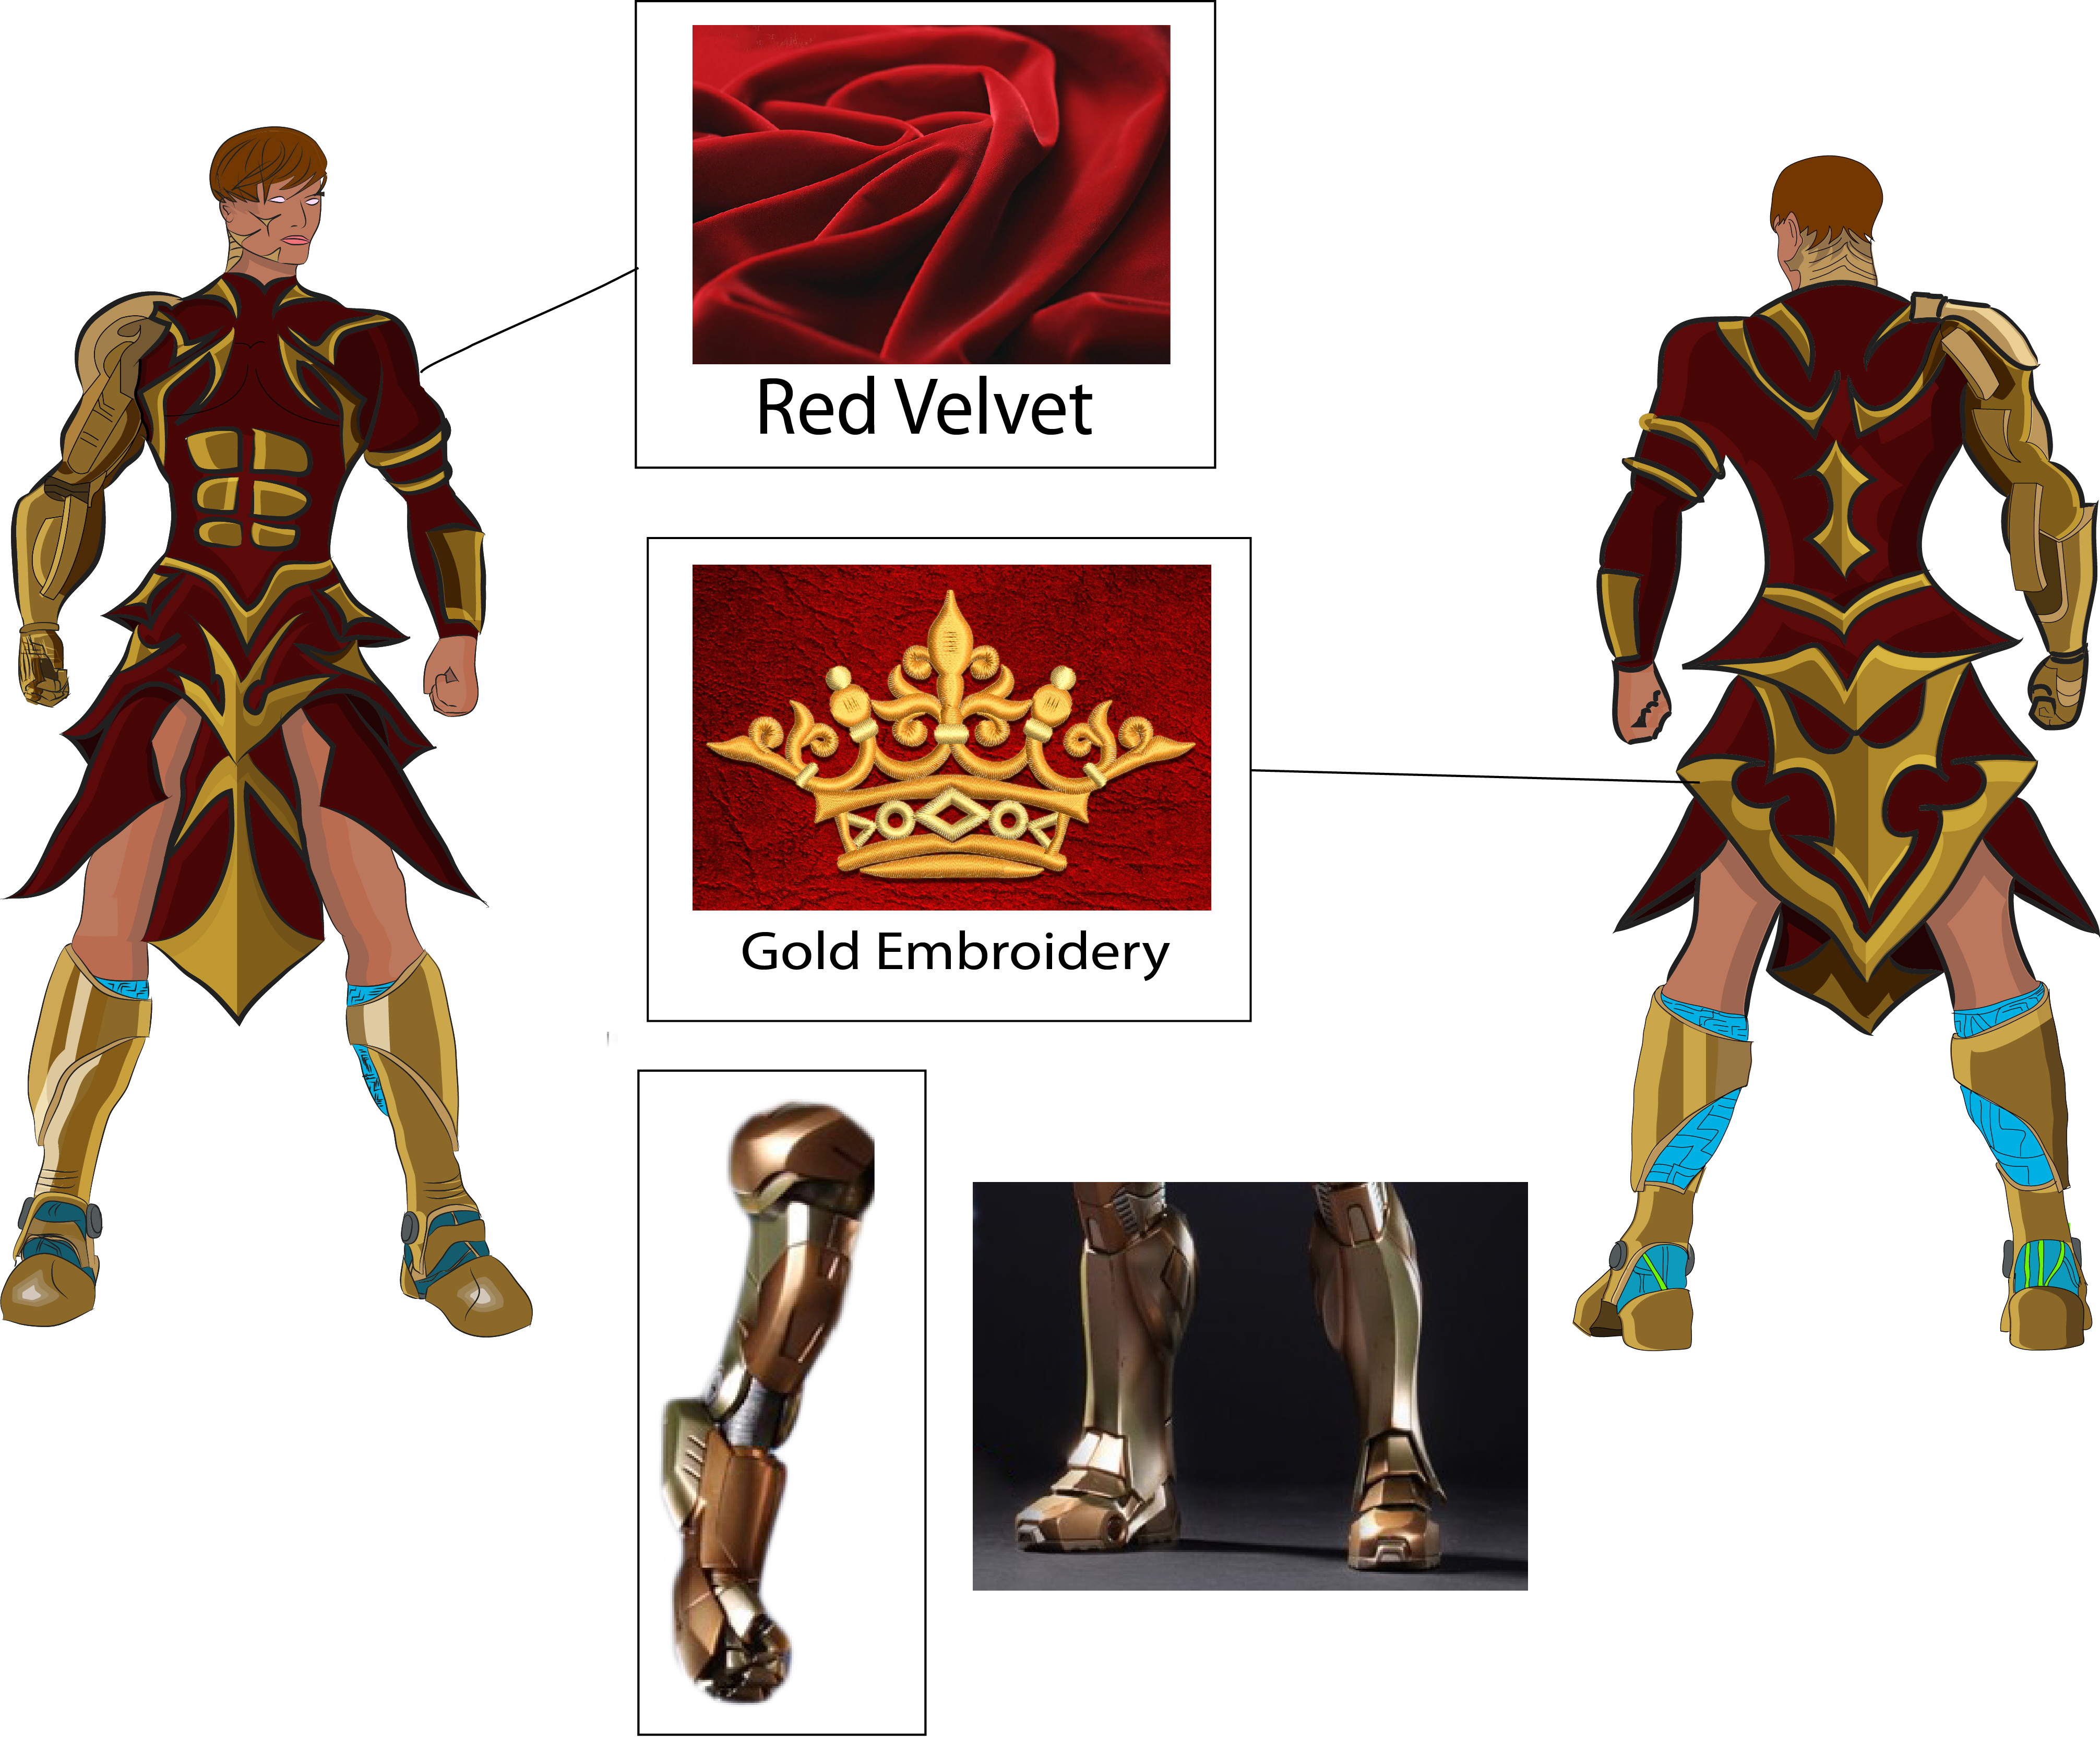 design a costume for the new movie 'Valérian and the City of a Thousand Planets'